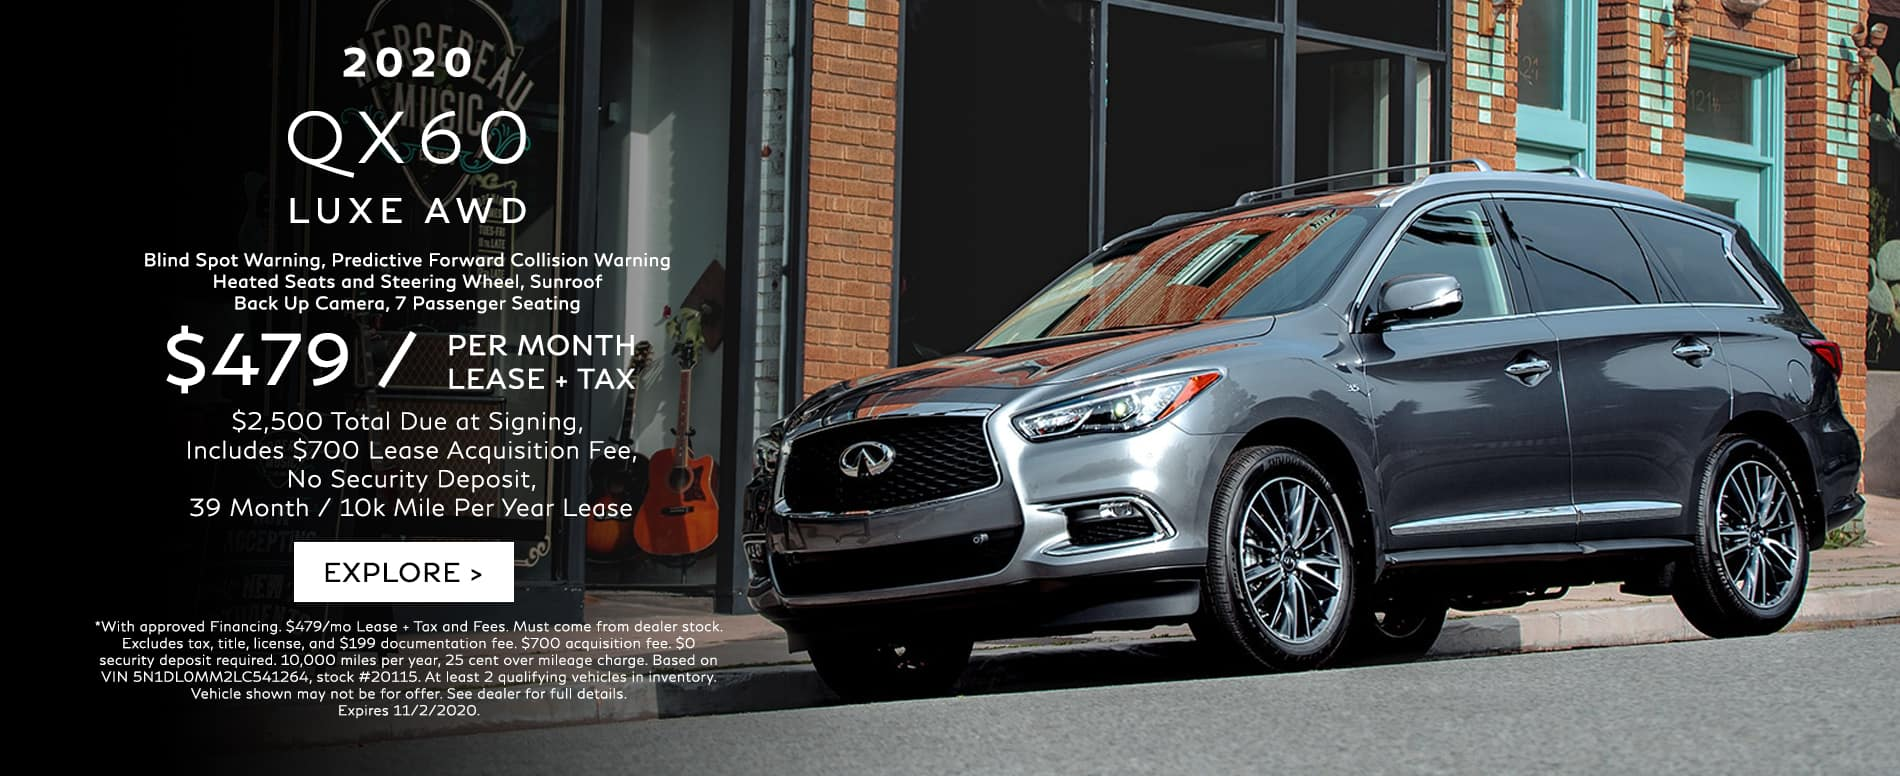 Lease a 2020 QX60 for $479/mo